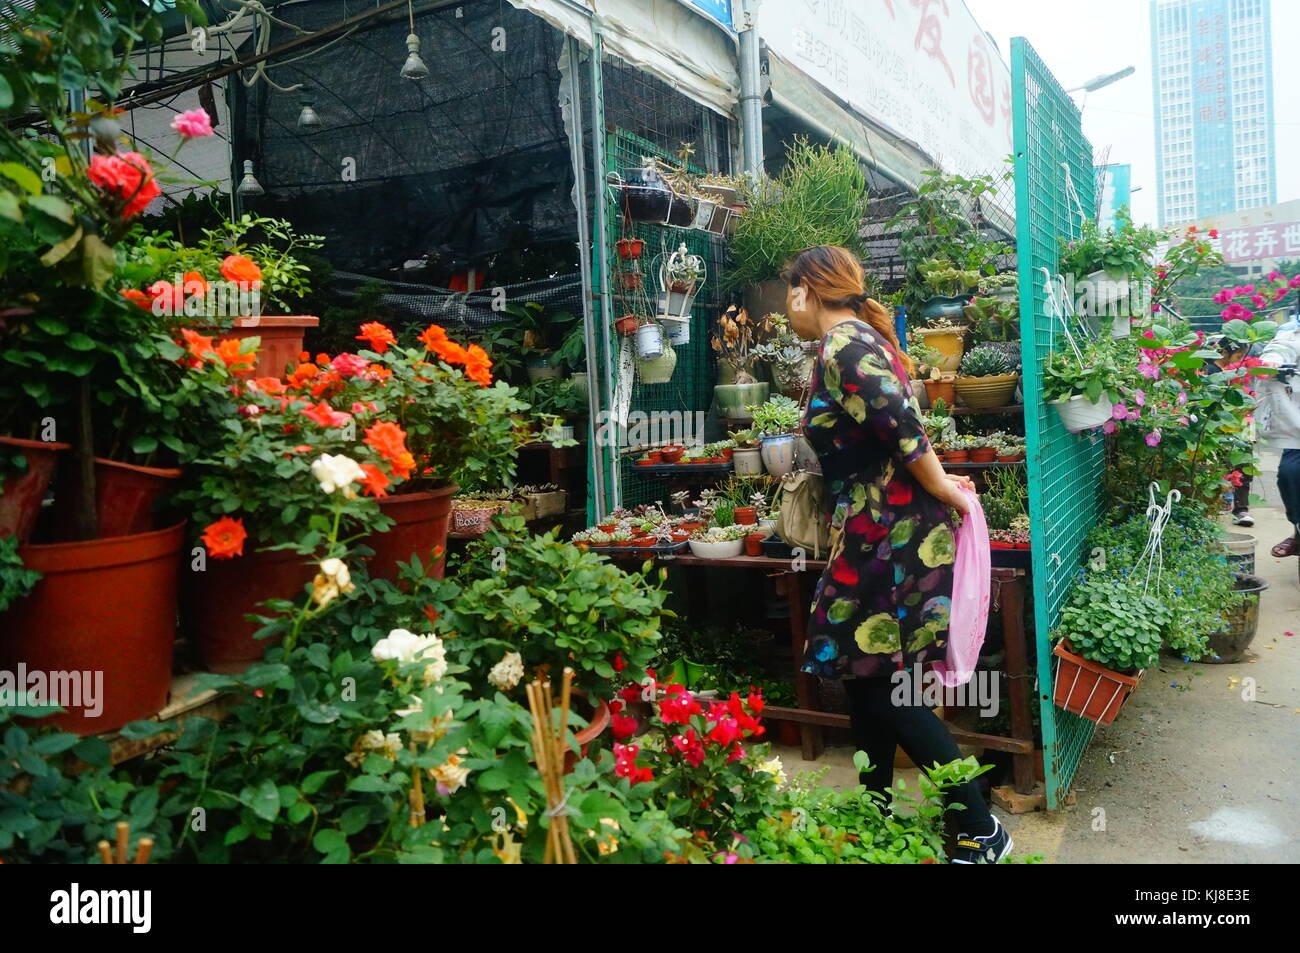 The women in the market of flowers and trees, flowers, buy